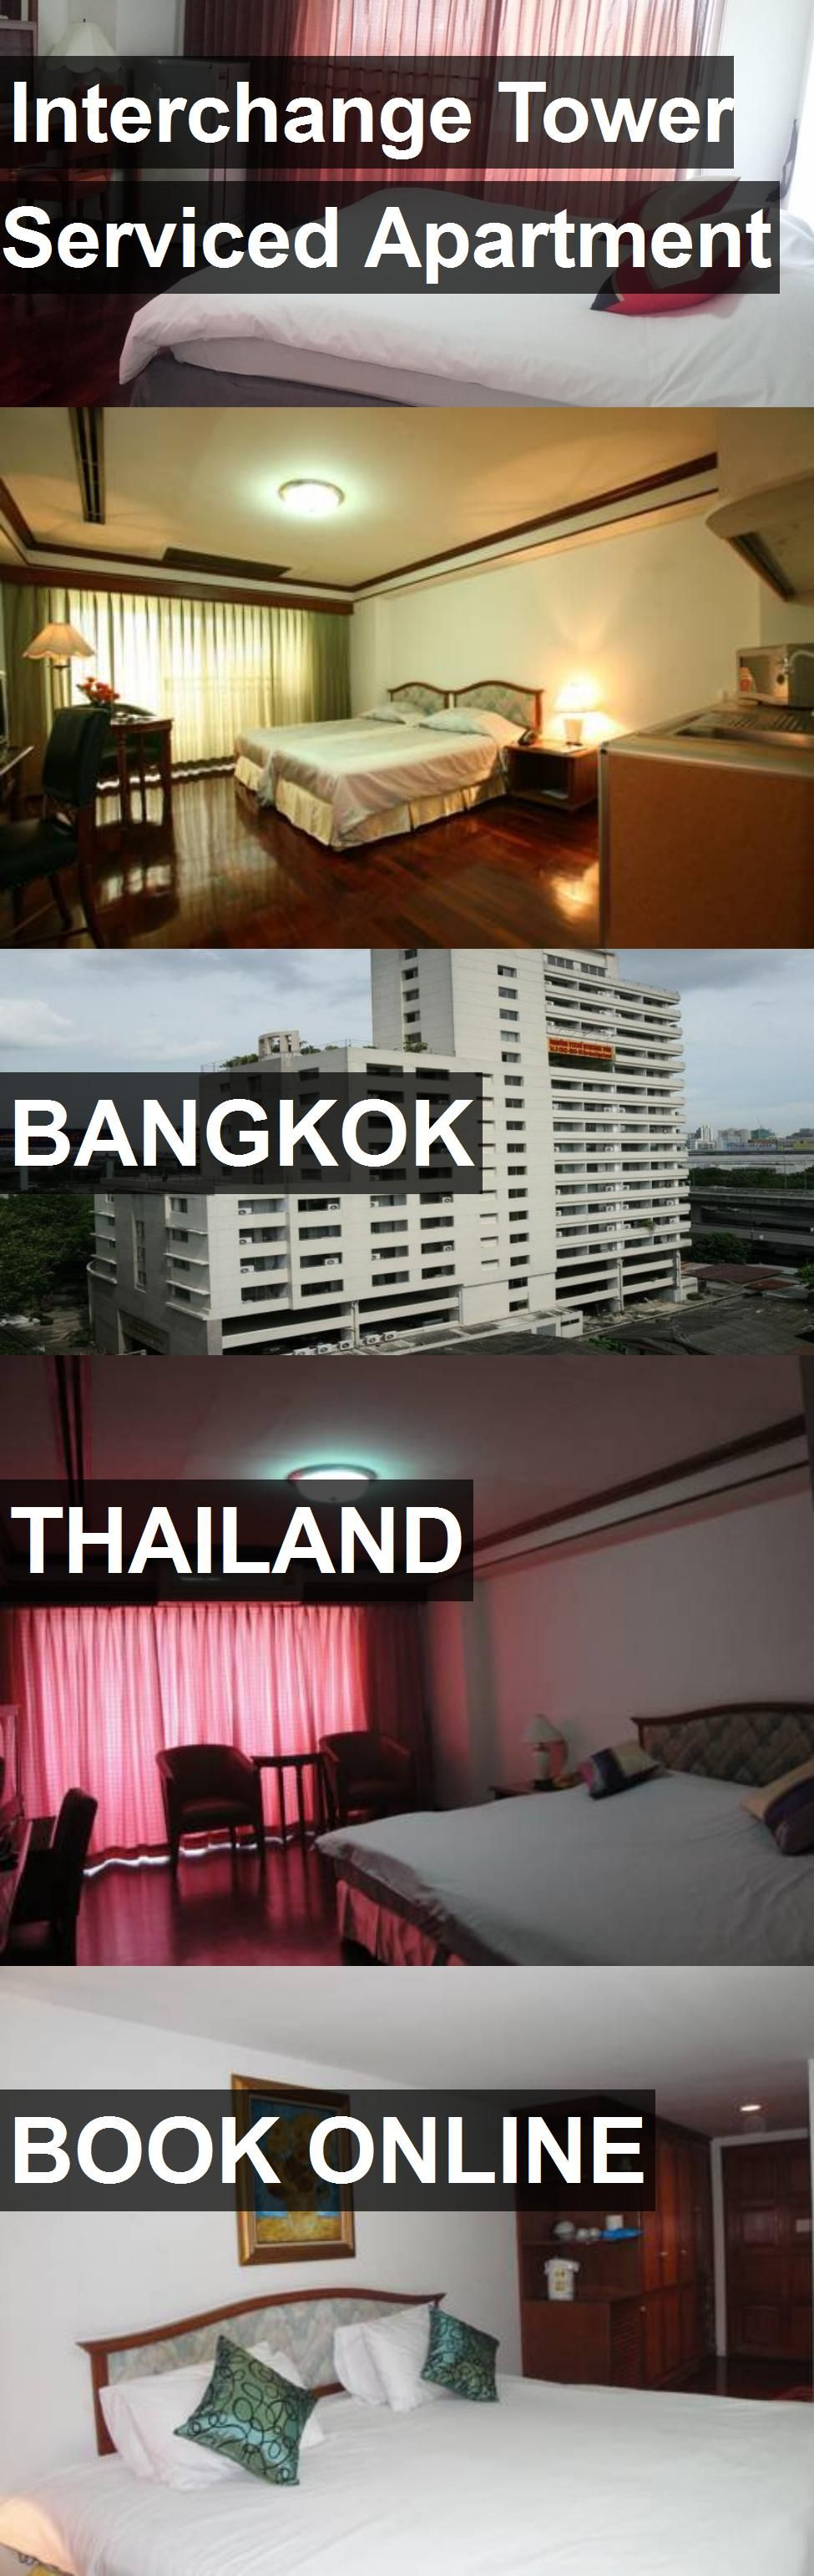 Interchange Tower Serviced Apartment in Bangkok, Thailand ...